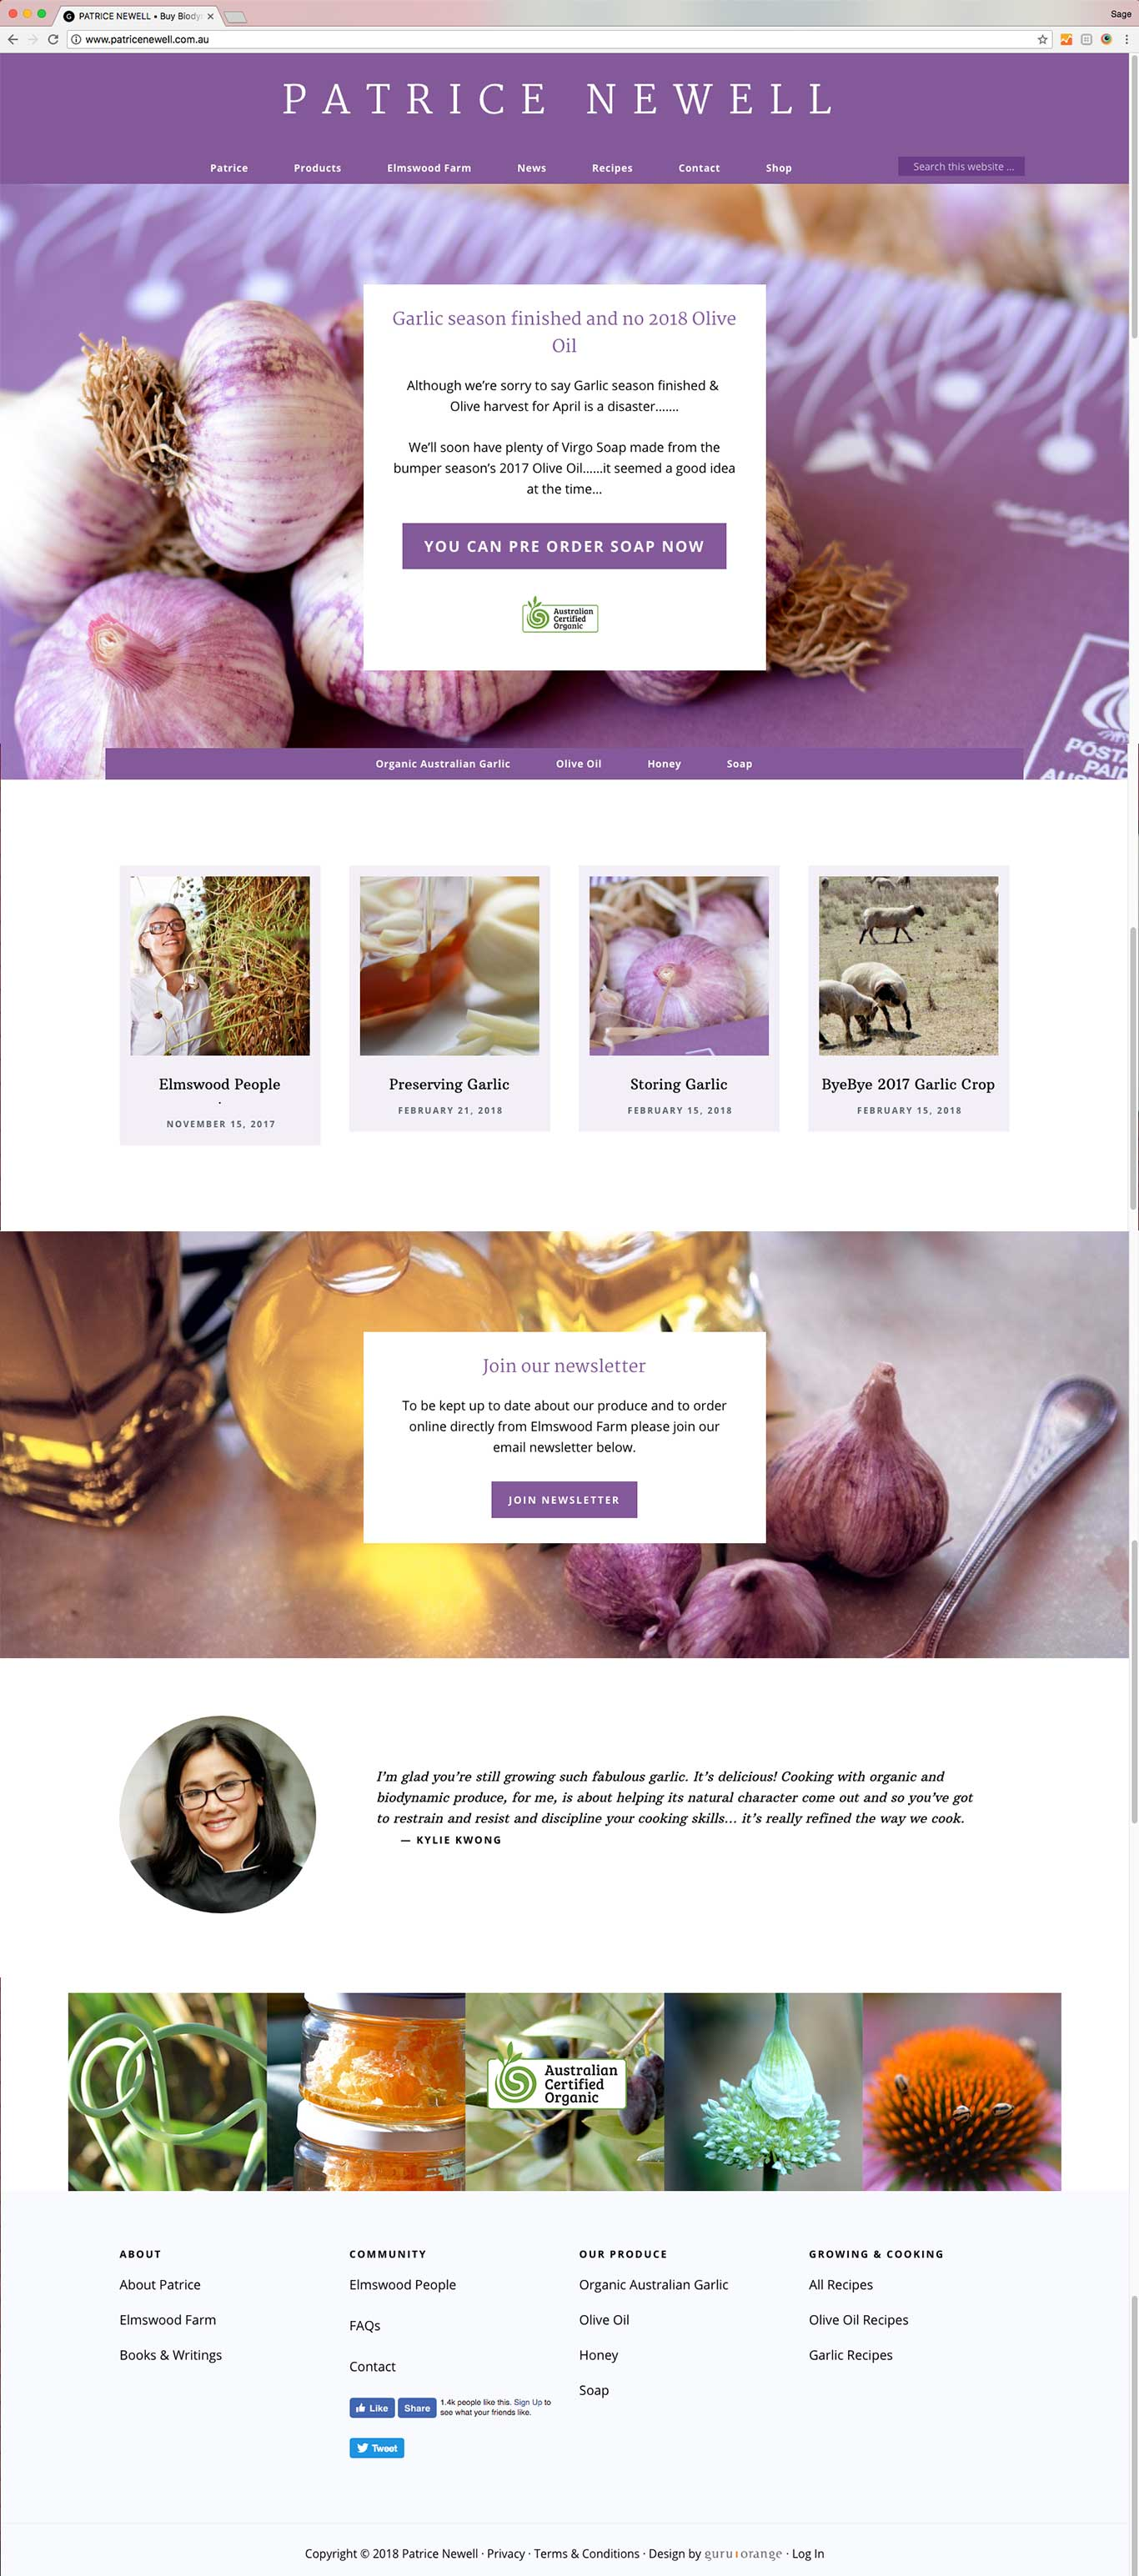 Patrice Newell | biodynamic food delivered to your door